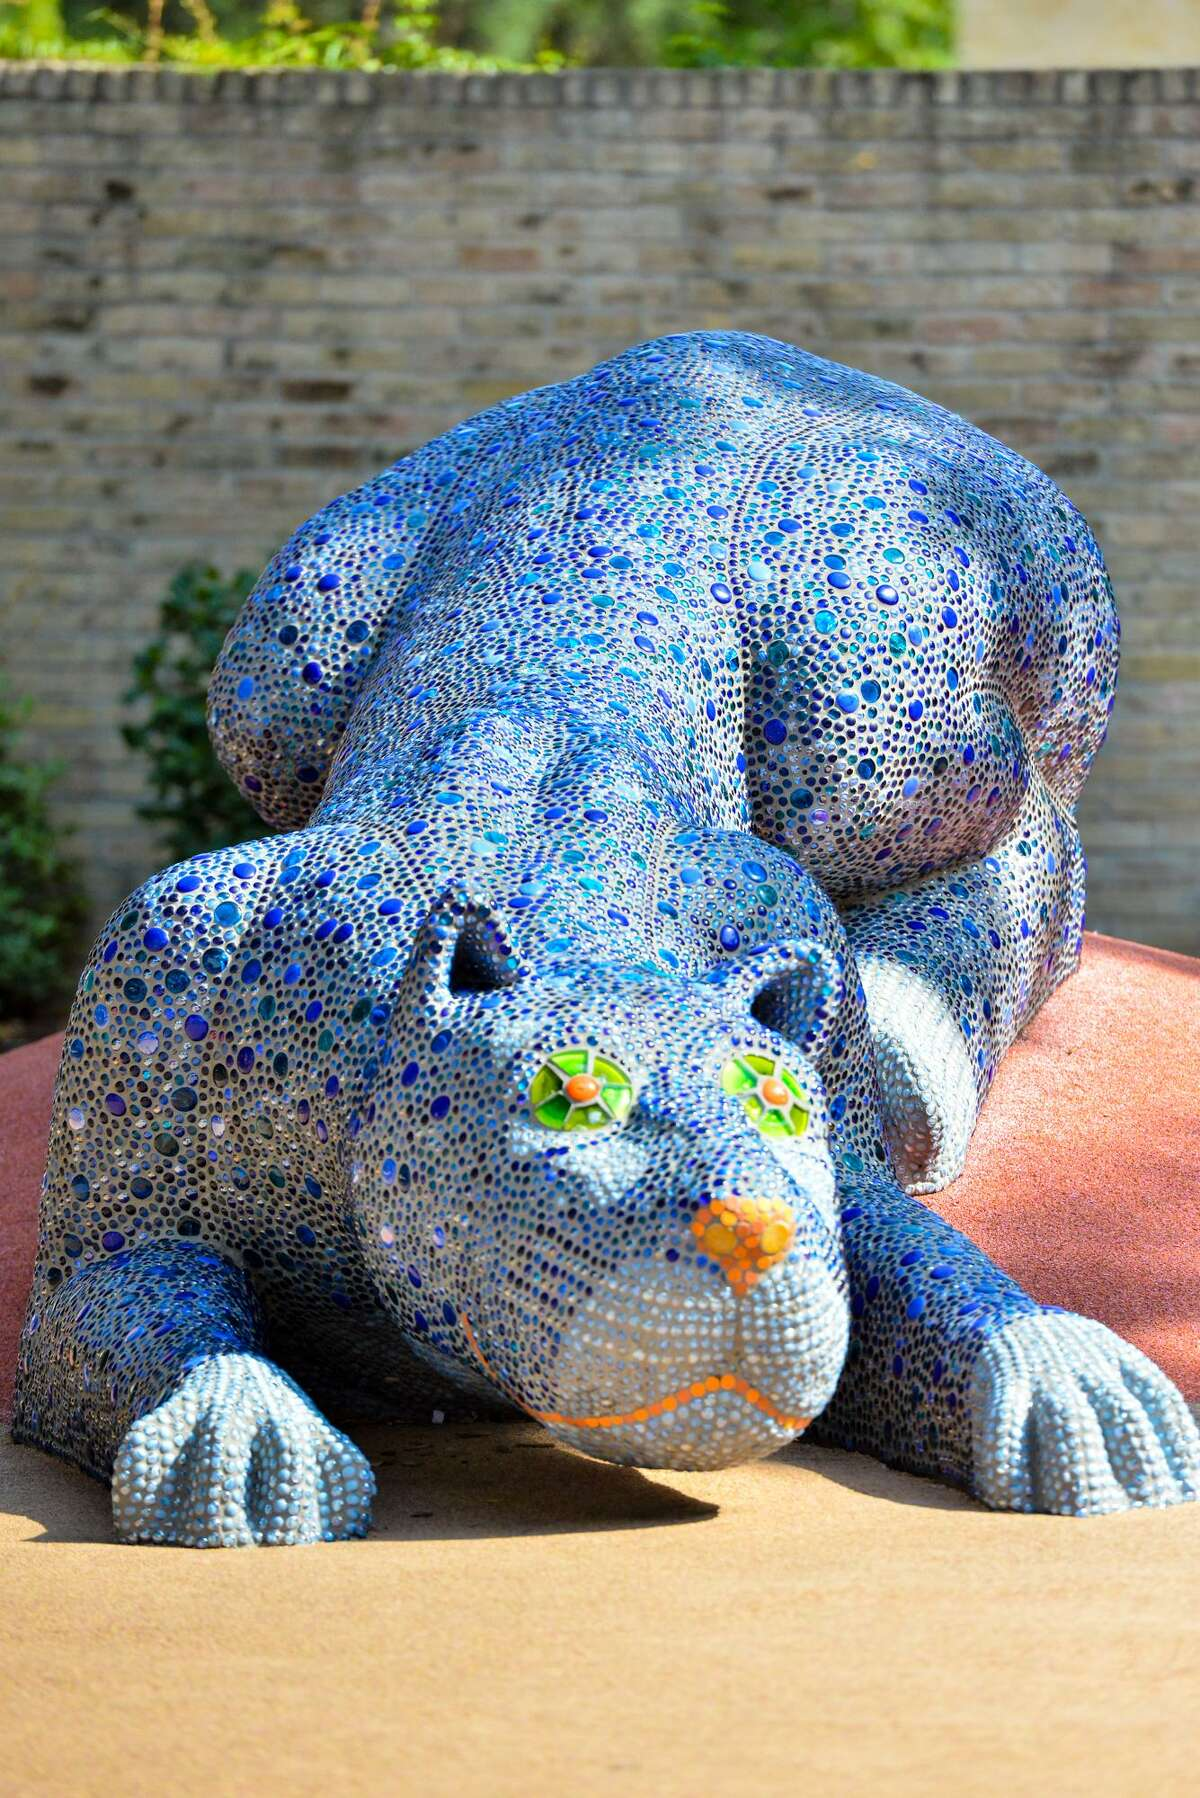 The blue panther that artist Oscar Alvarado created for Yanaguana Garden at Hemisfair is among his best-known works.